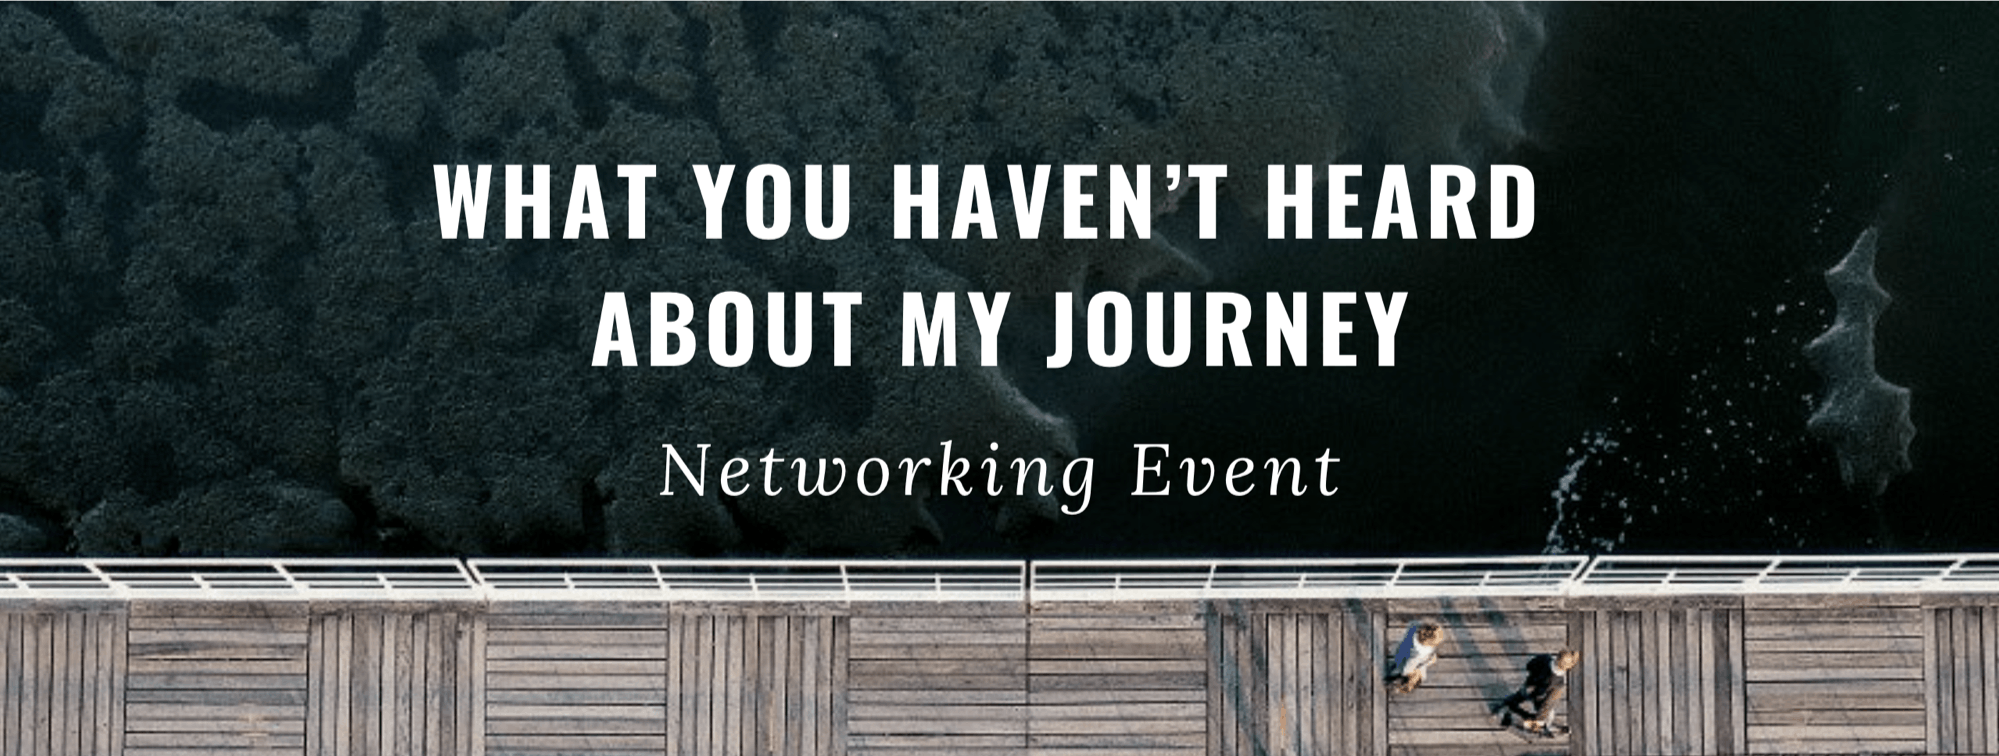 What You Havent Heard About my Story: Panel and Networking Event